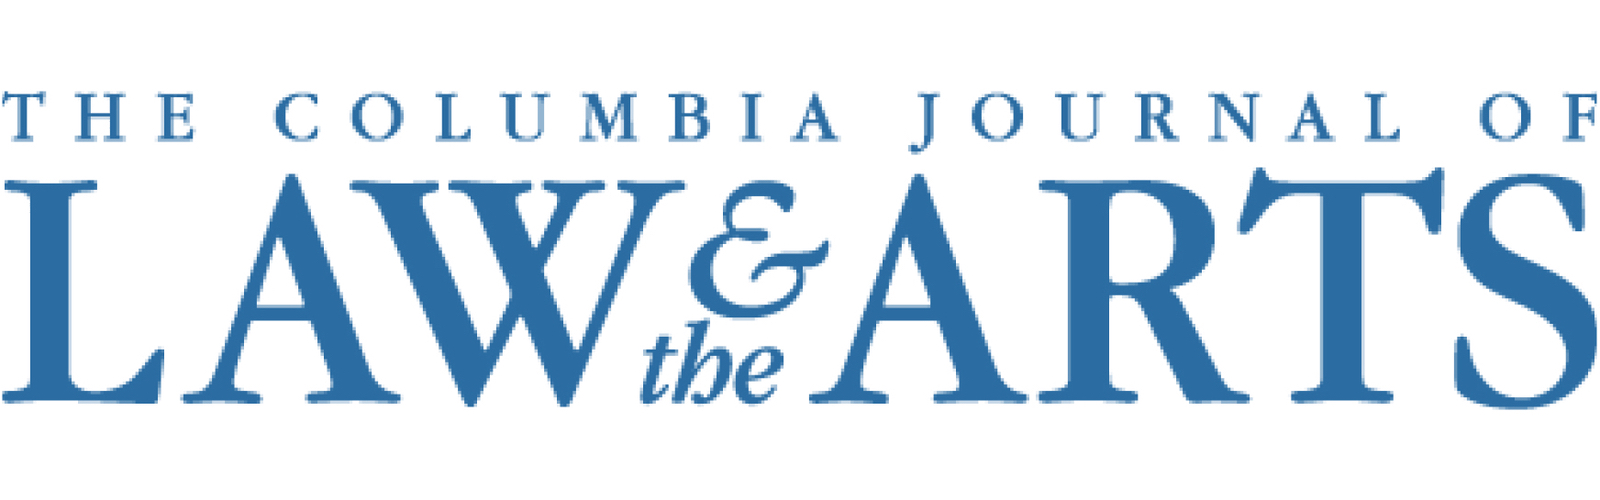 link to Columbia Journal of Law & the Arts site